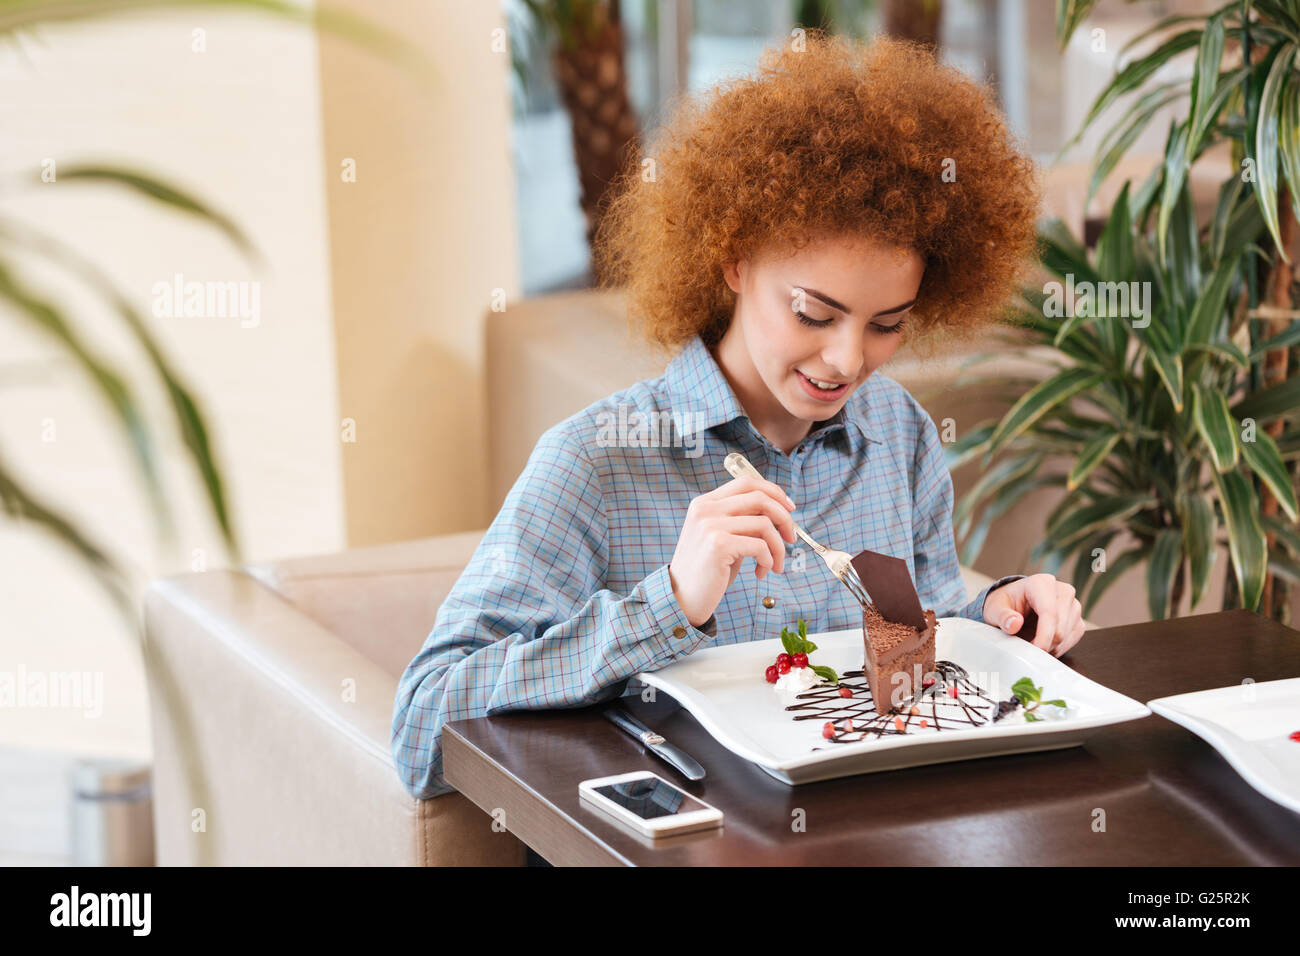 Cute curly young woman with red hair eating dessert in cafe - Stock Image